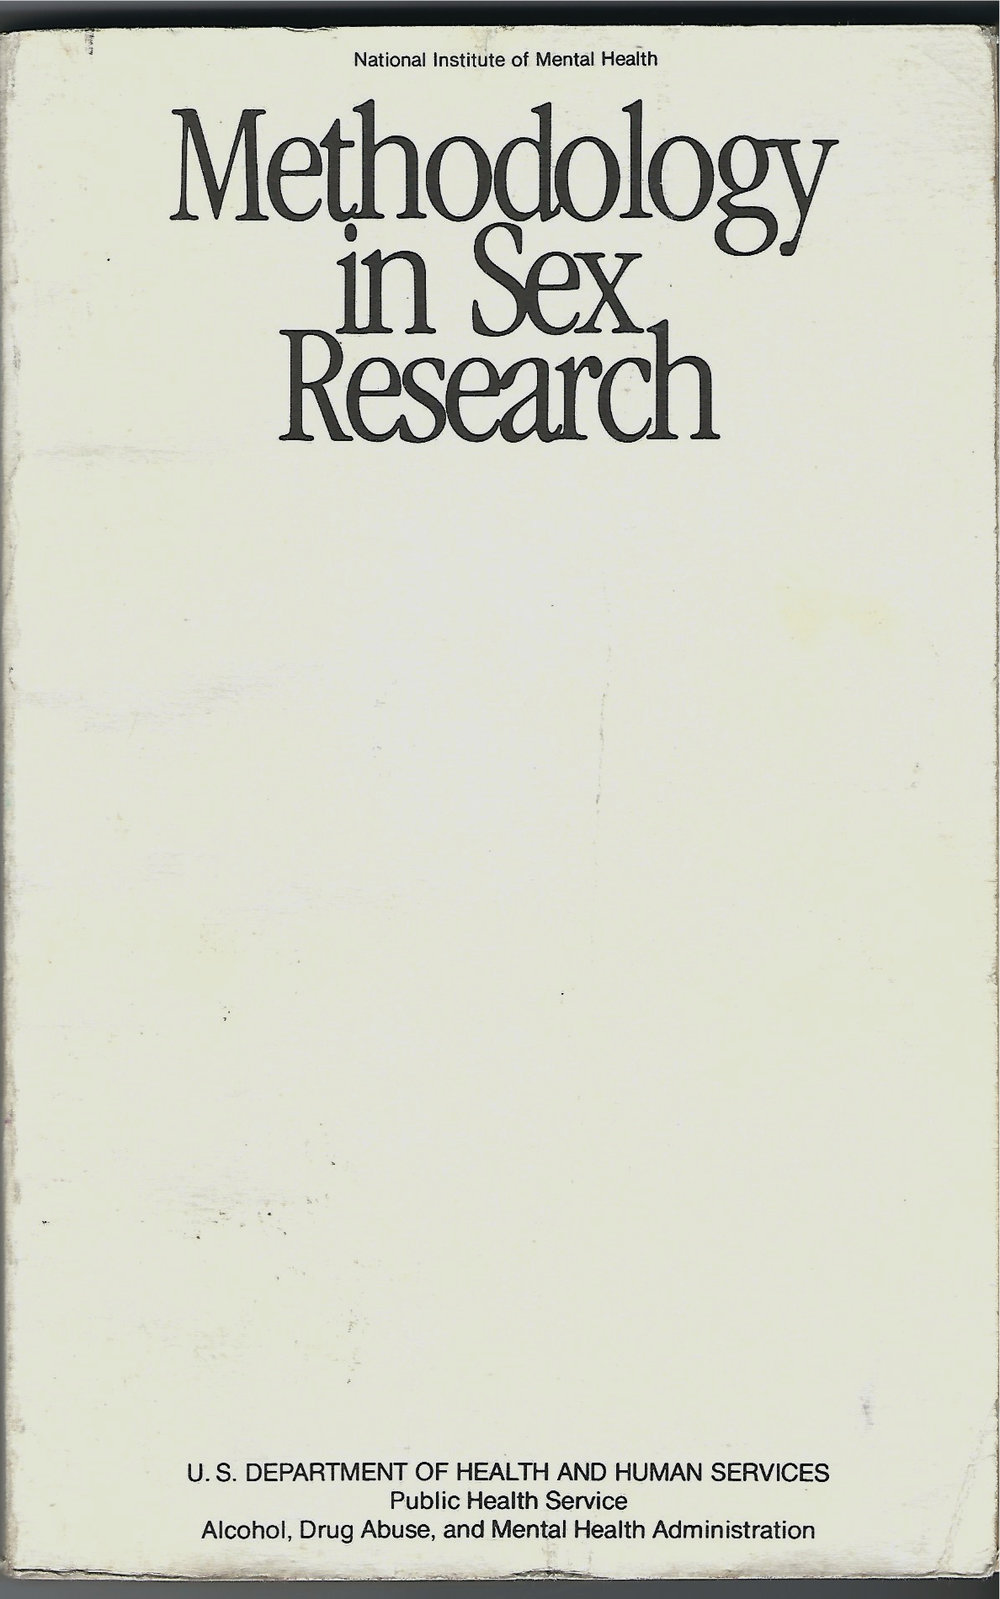 Methodology in Sex Research - Richard Green & Jack Weiner1980